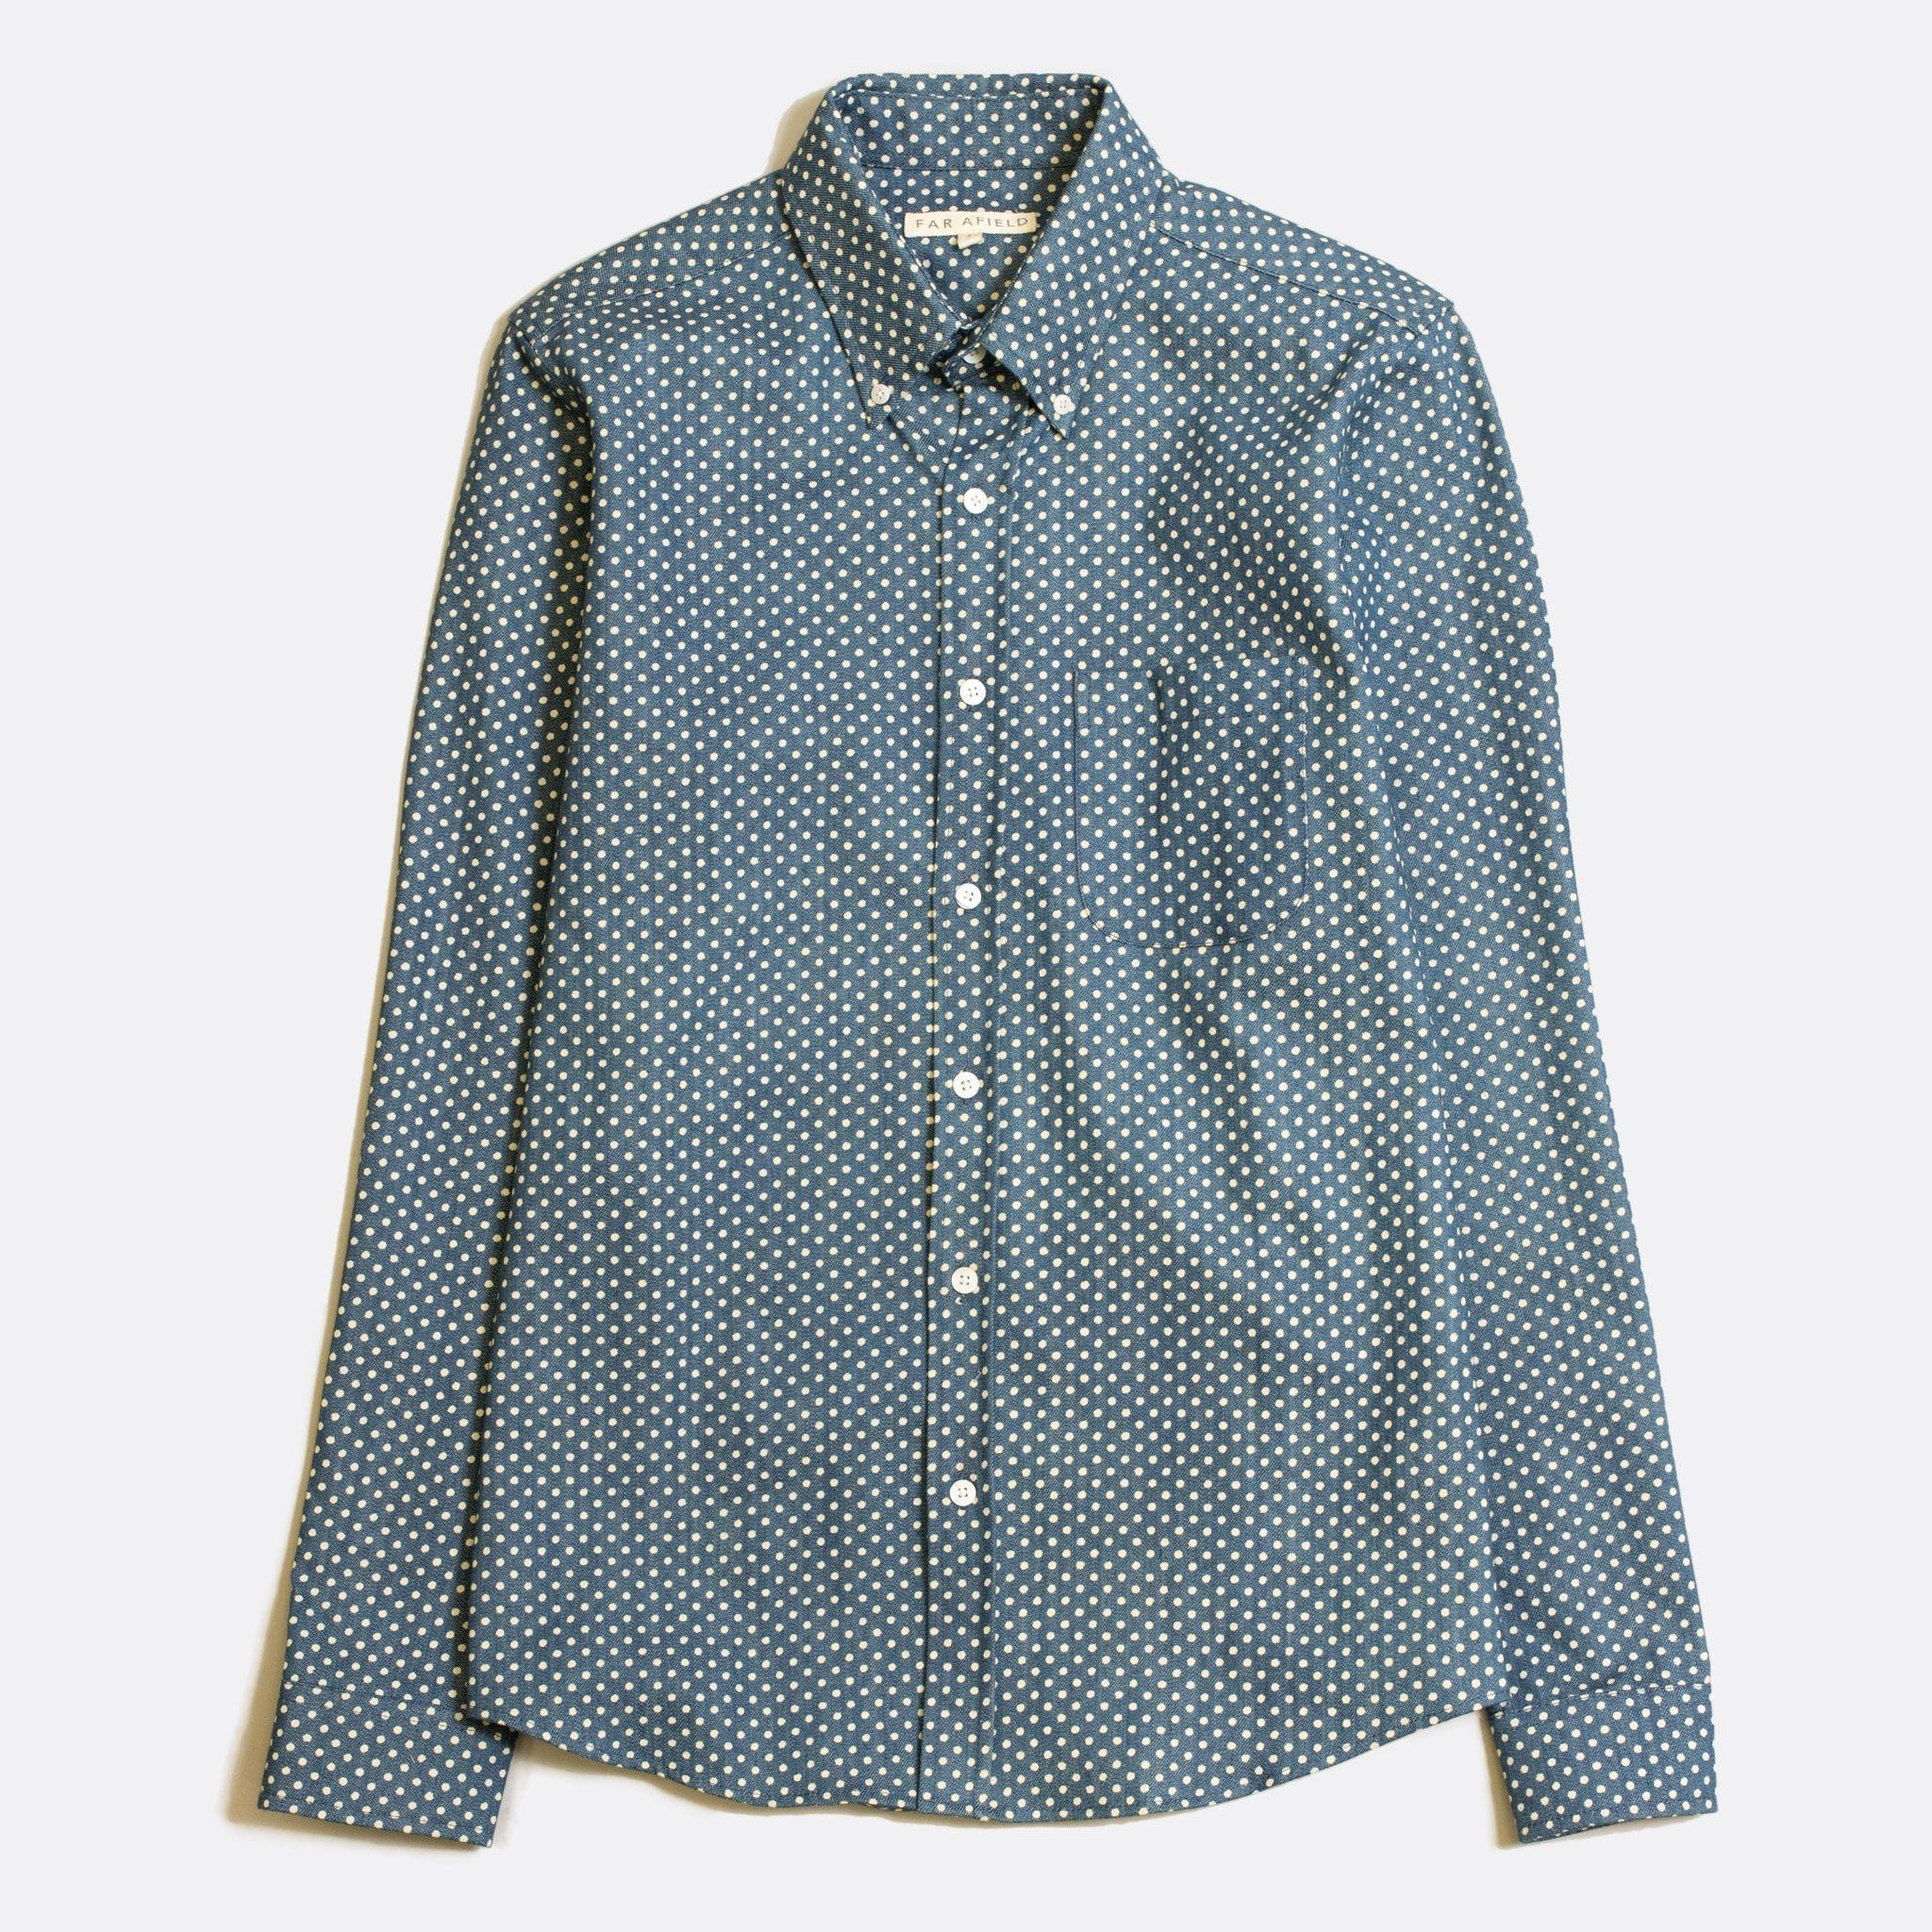 Far Afield Mod Button Down Long Sleeve Shirt a Chambray Cotton Blue Polka Dot Repeat Pattern Print Fabric